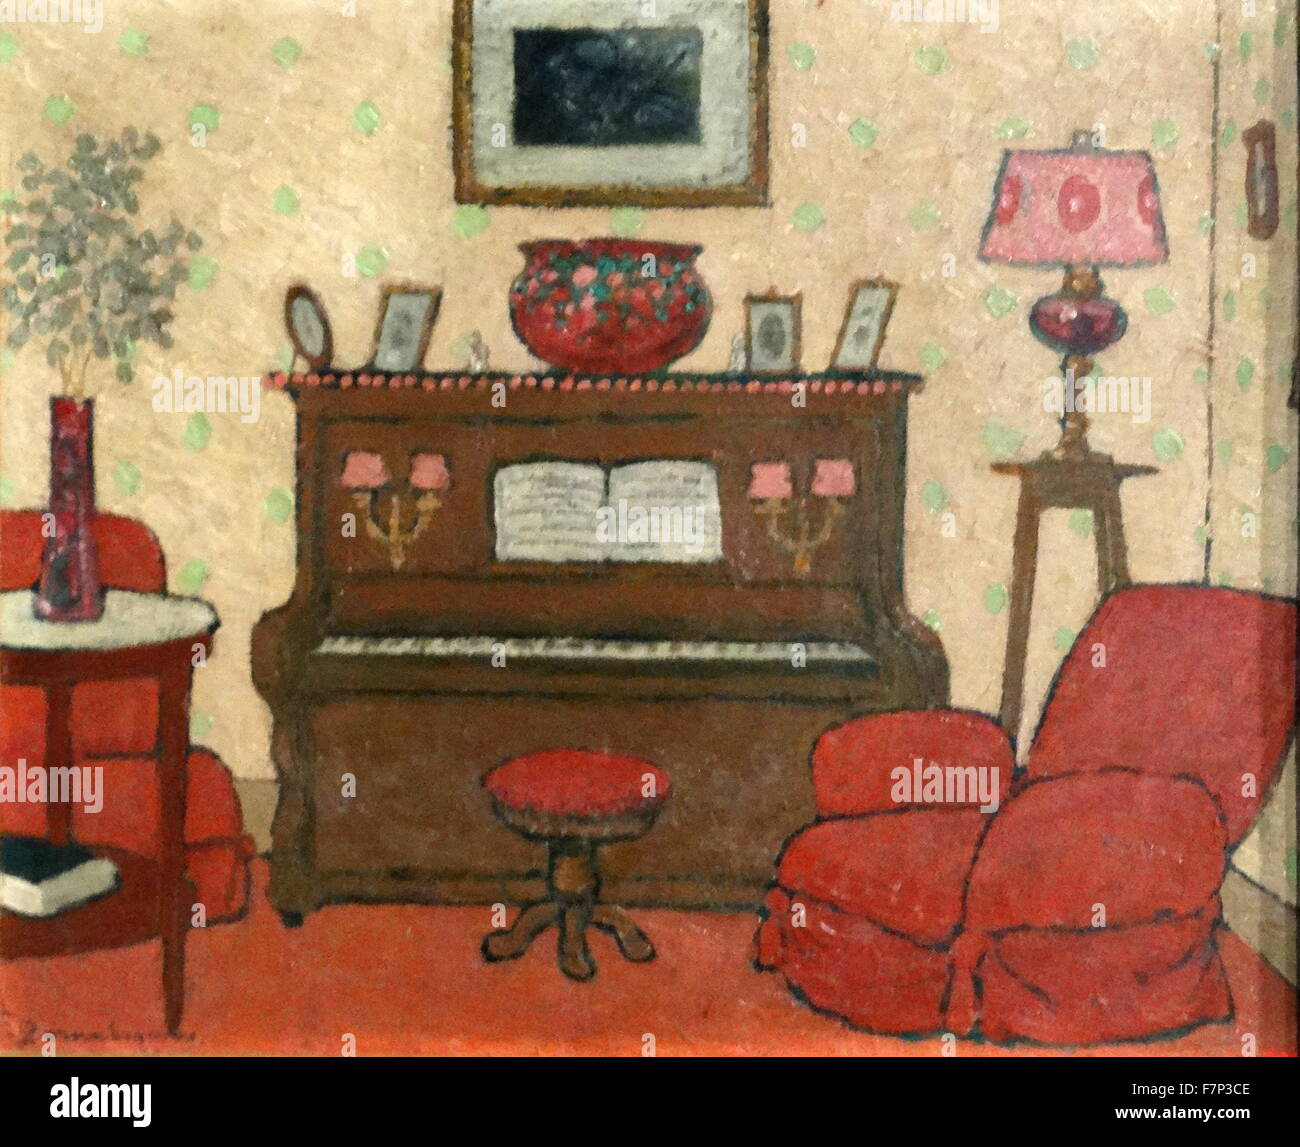 Painting titled 'Interior' by Pere Tornè Esquius (1879-1936) French cartoonist and painter. Dated 1920 - Stock Image